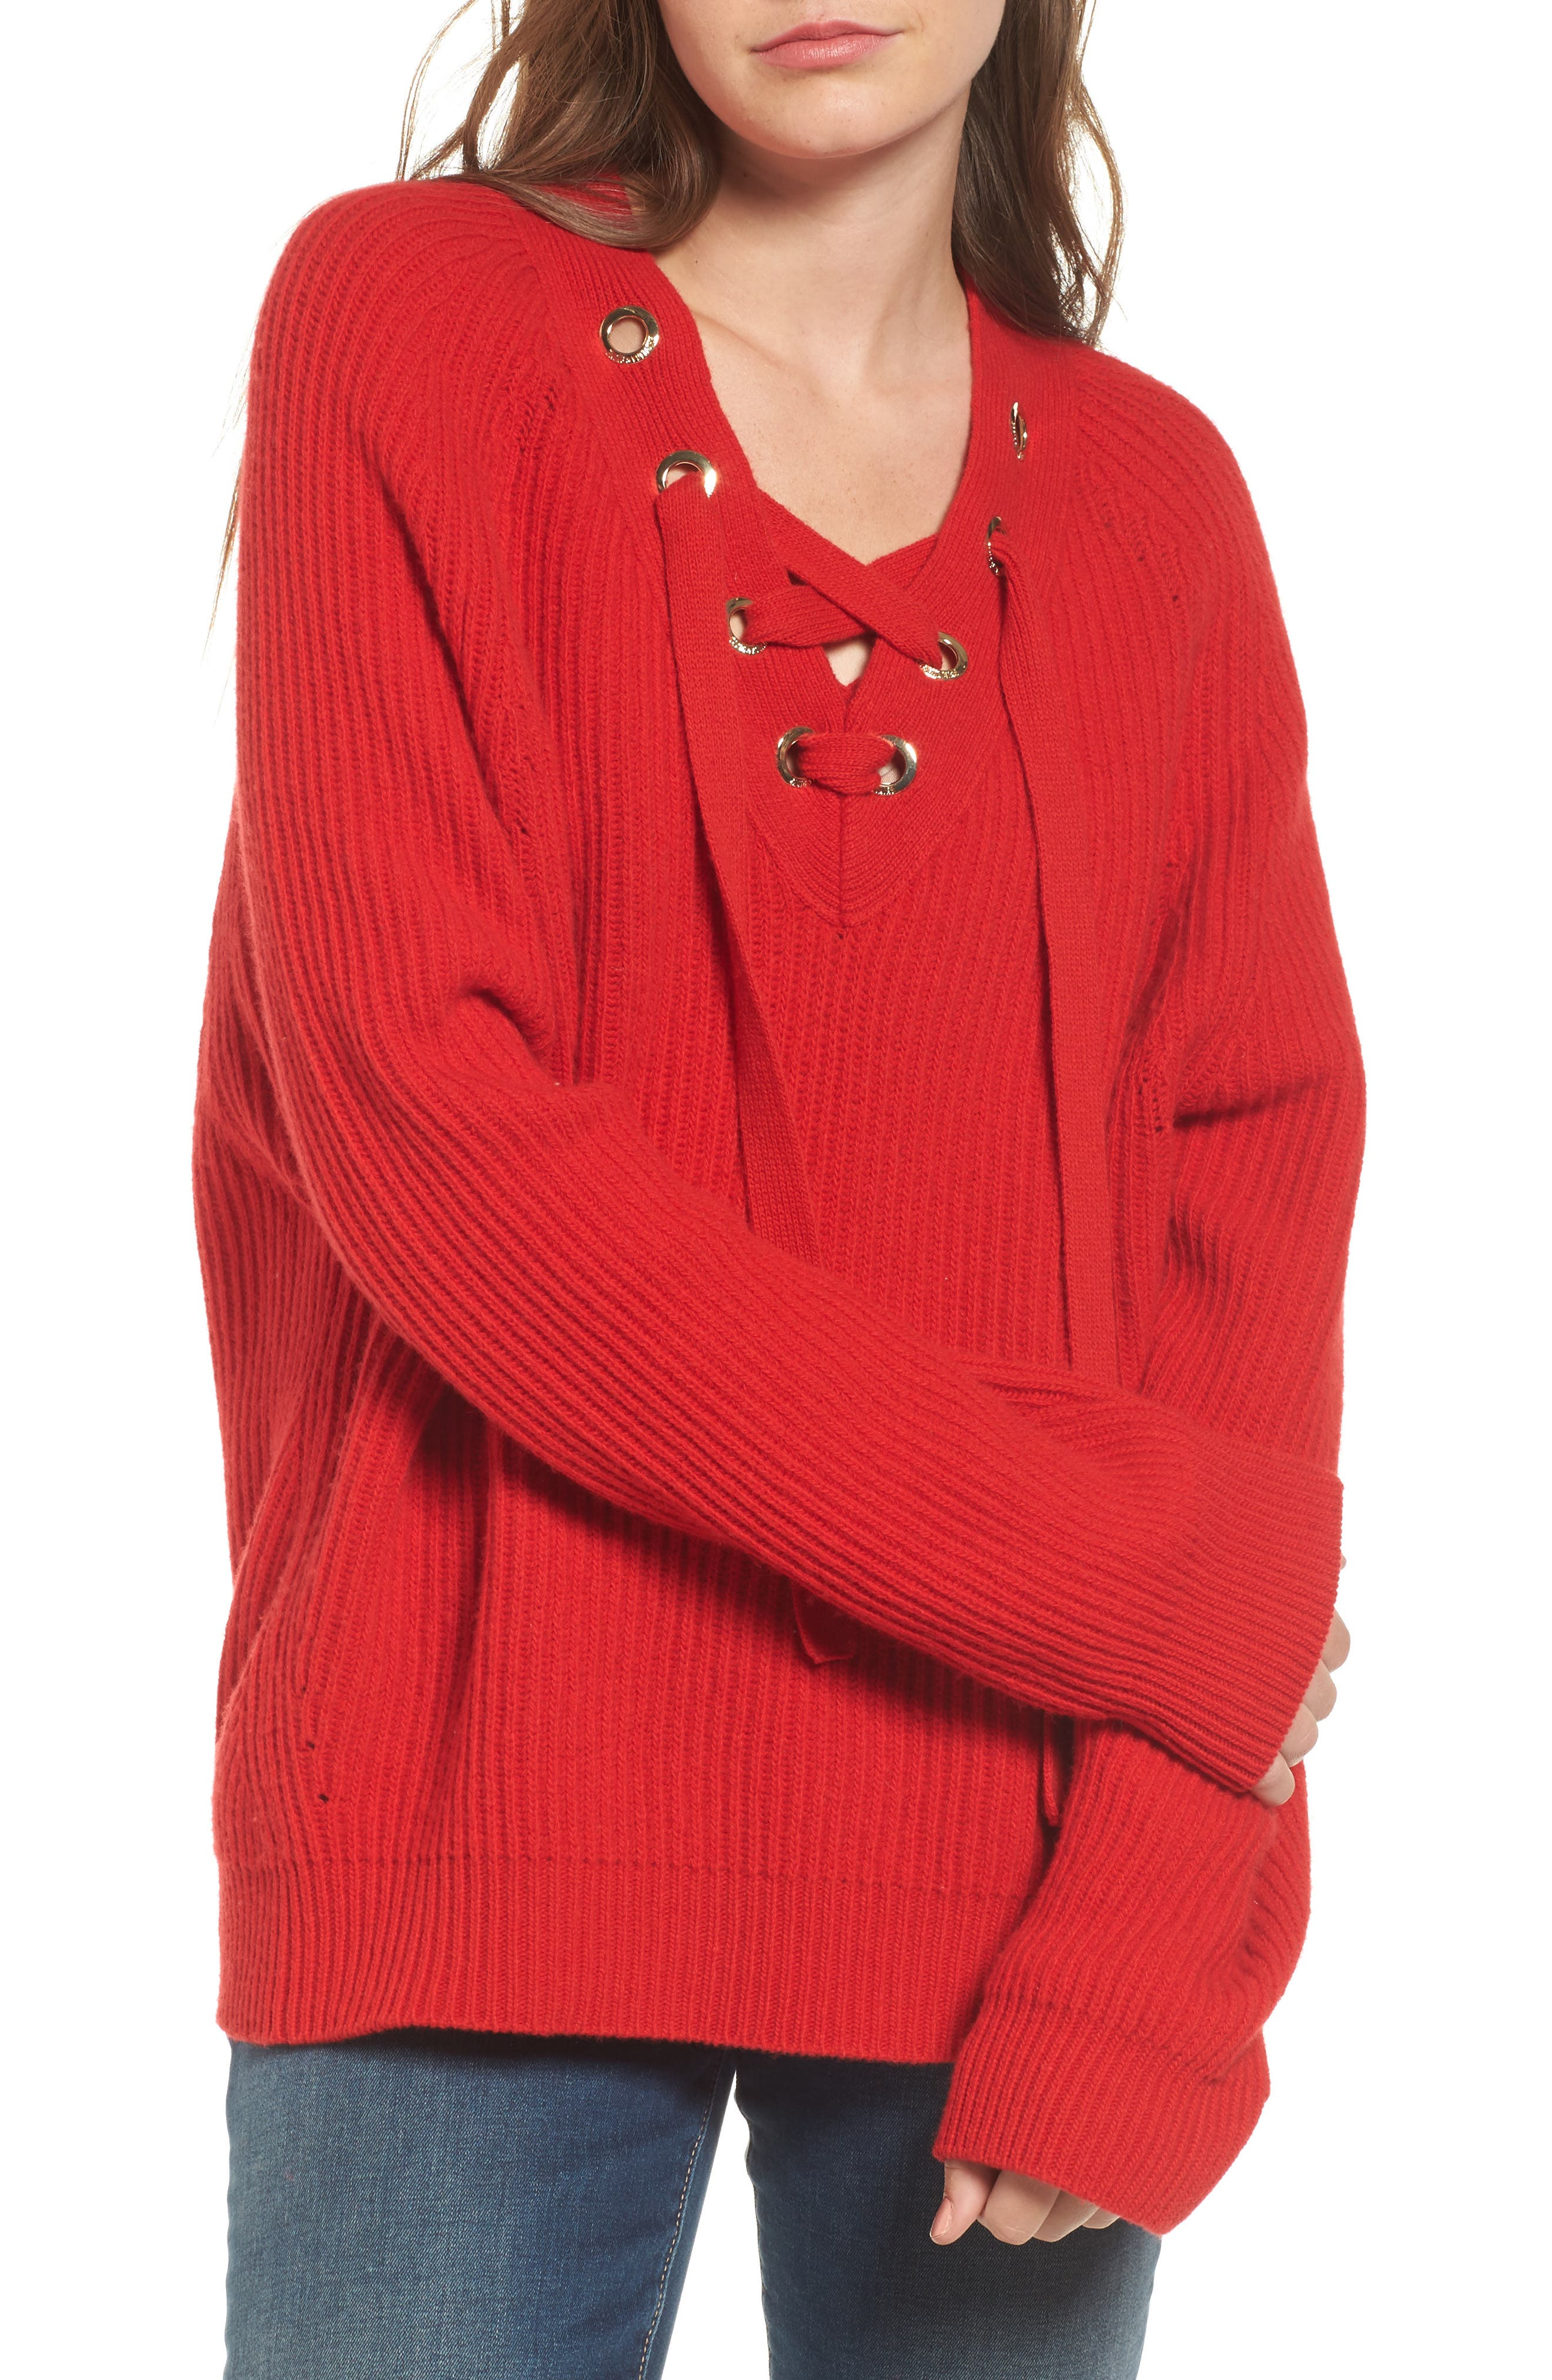 Kassy Wool Blend Sweater,                         Main,                         color, 600